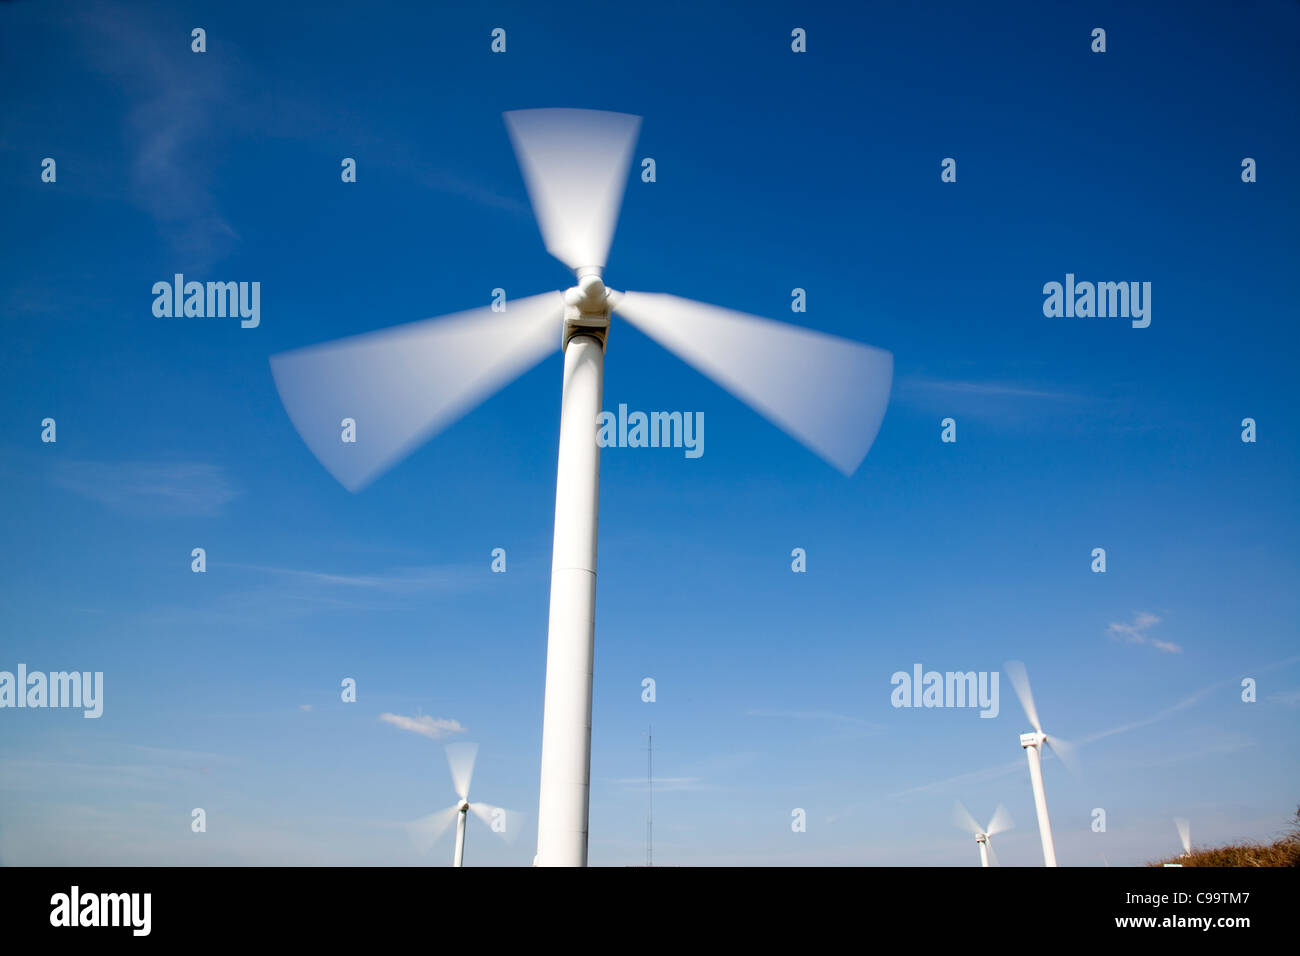 Wind Farm, Wind Turbine against blue sky - Stock Image